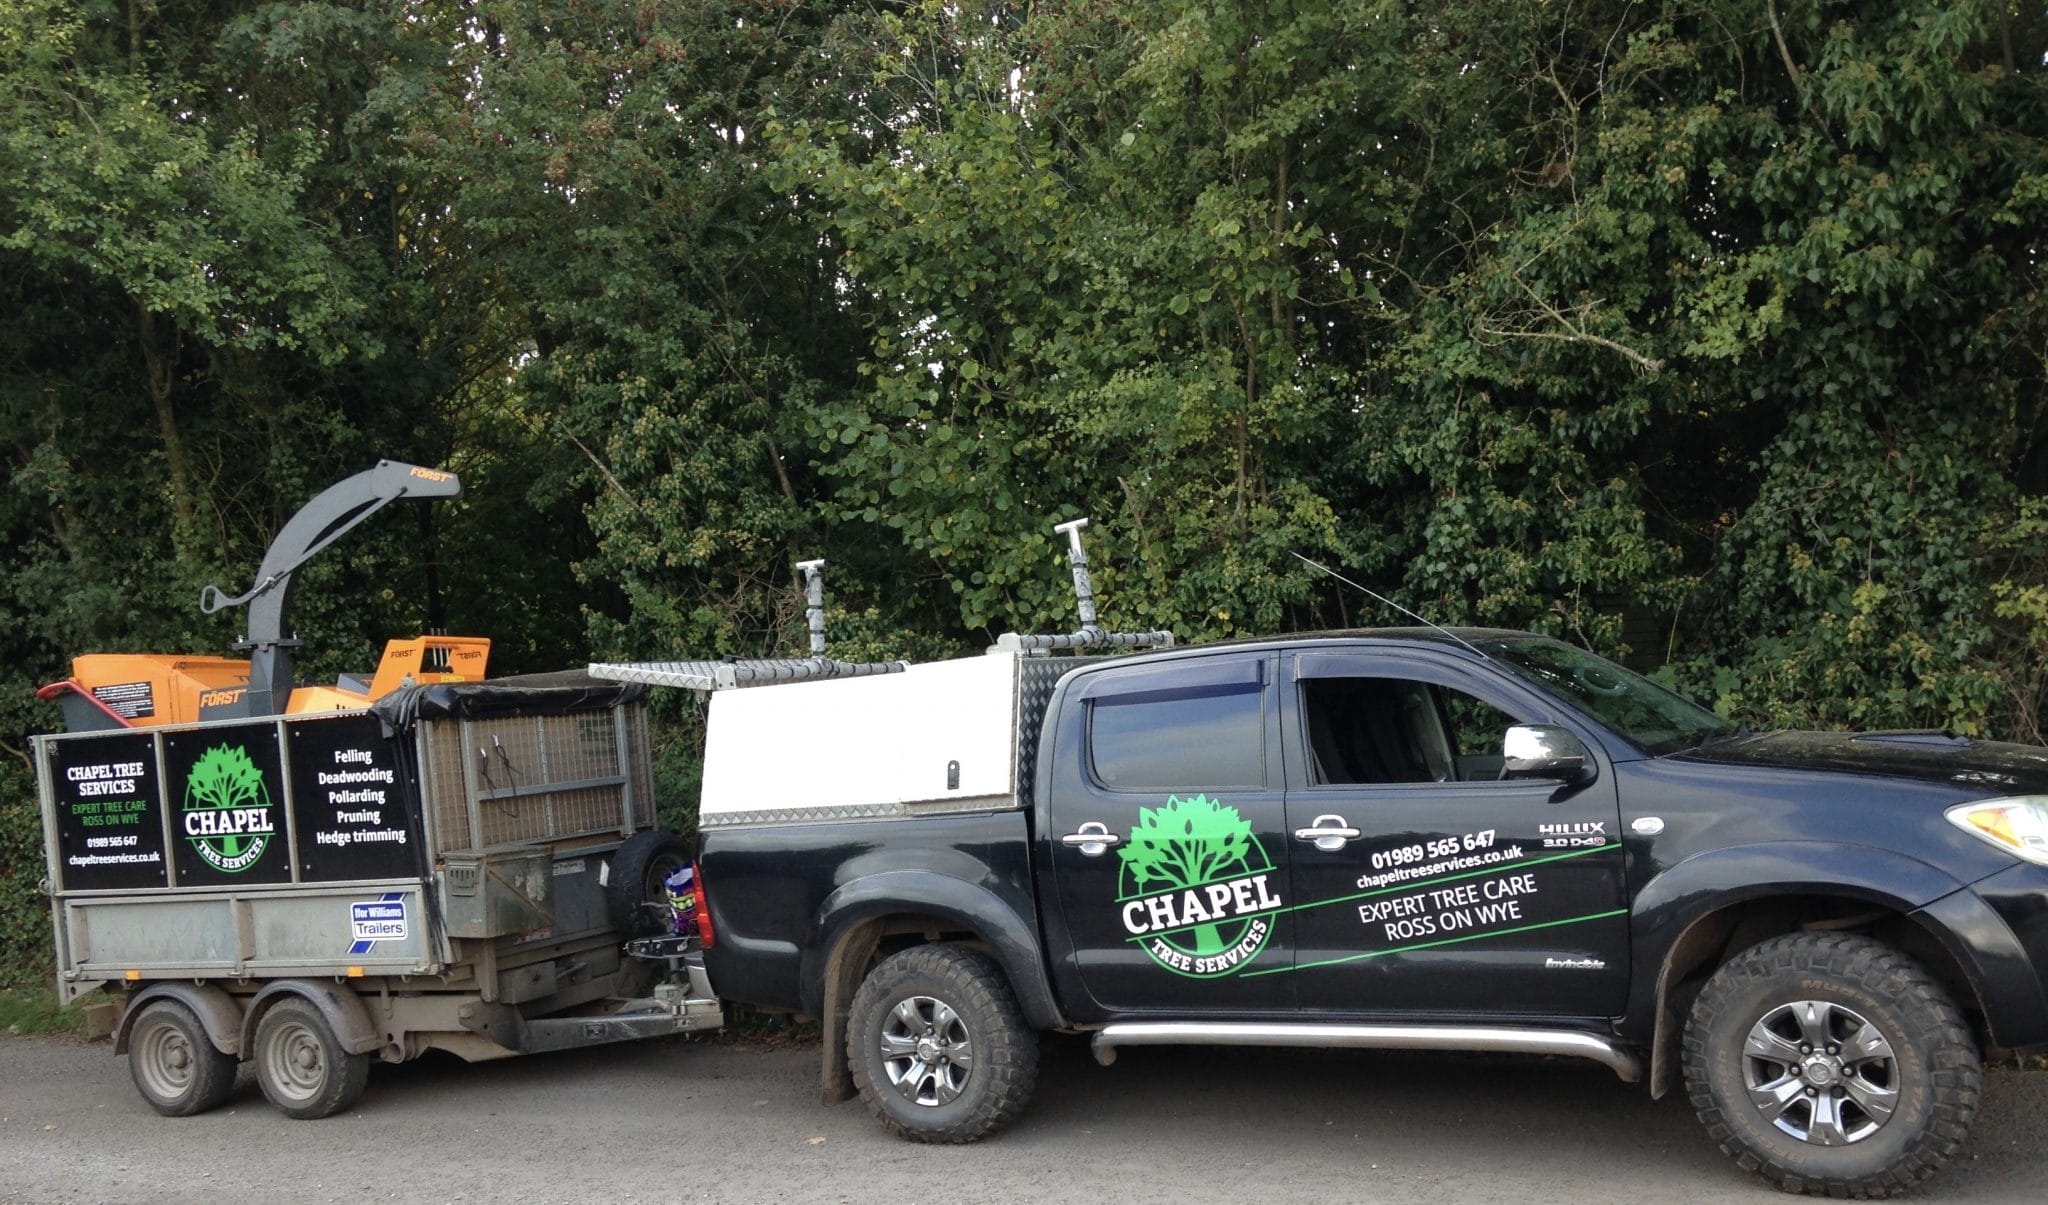 Chapel Tree Services vehicle